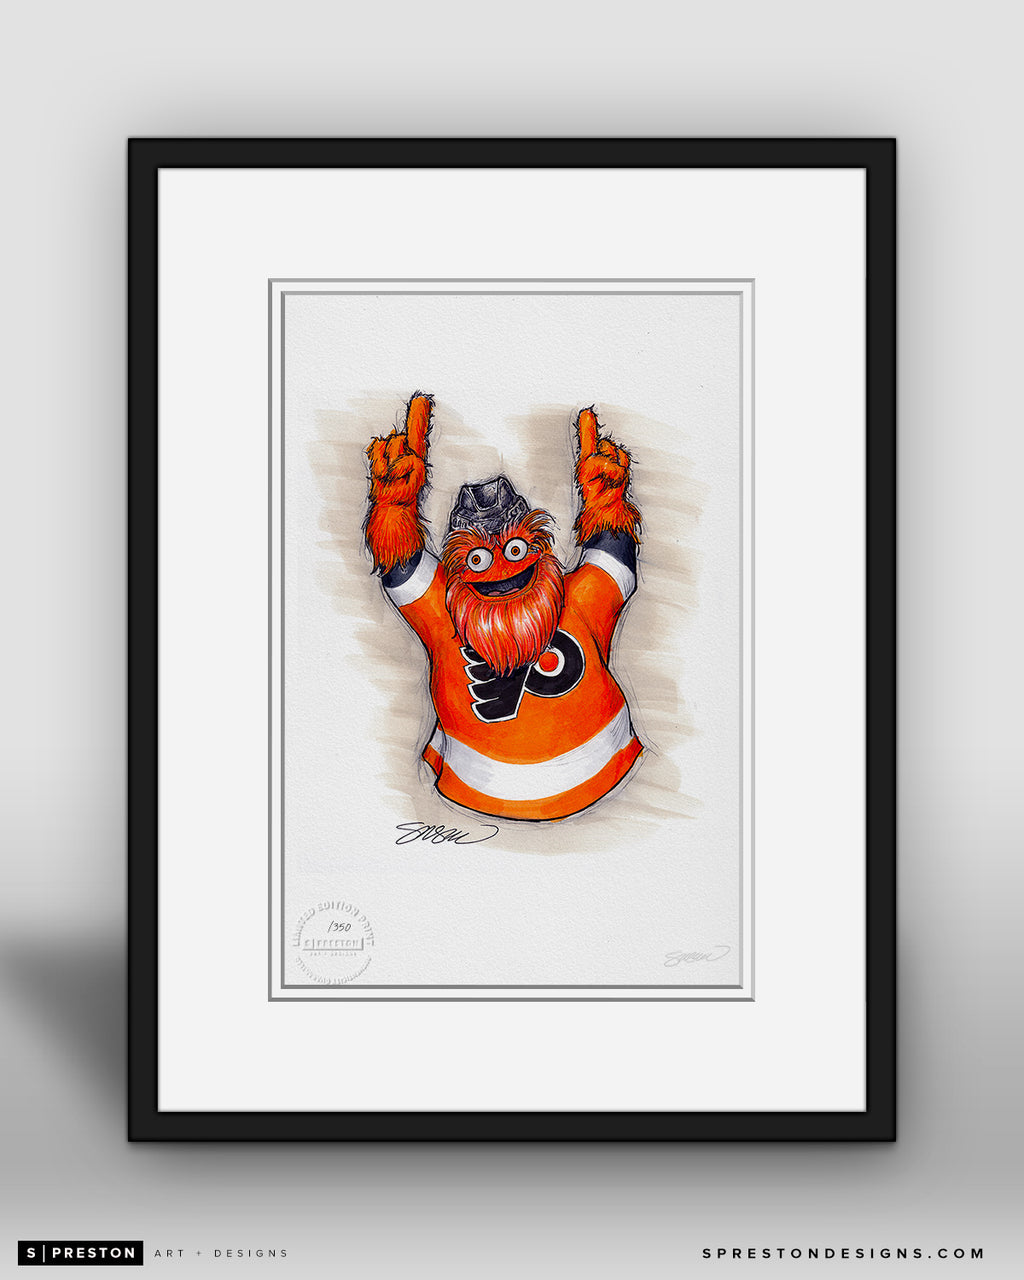 Gritty - Philadelphia Flyers Mascot Ink Sketch Print